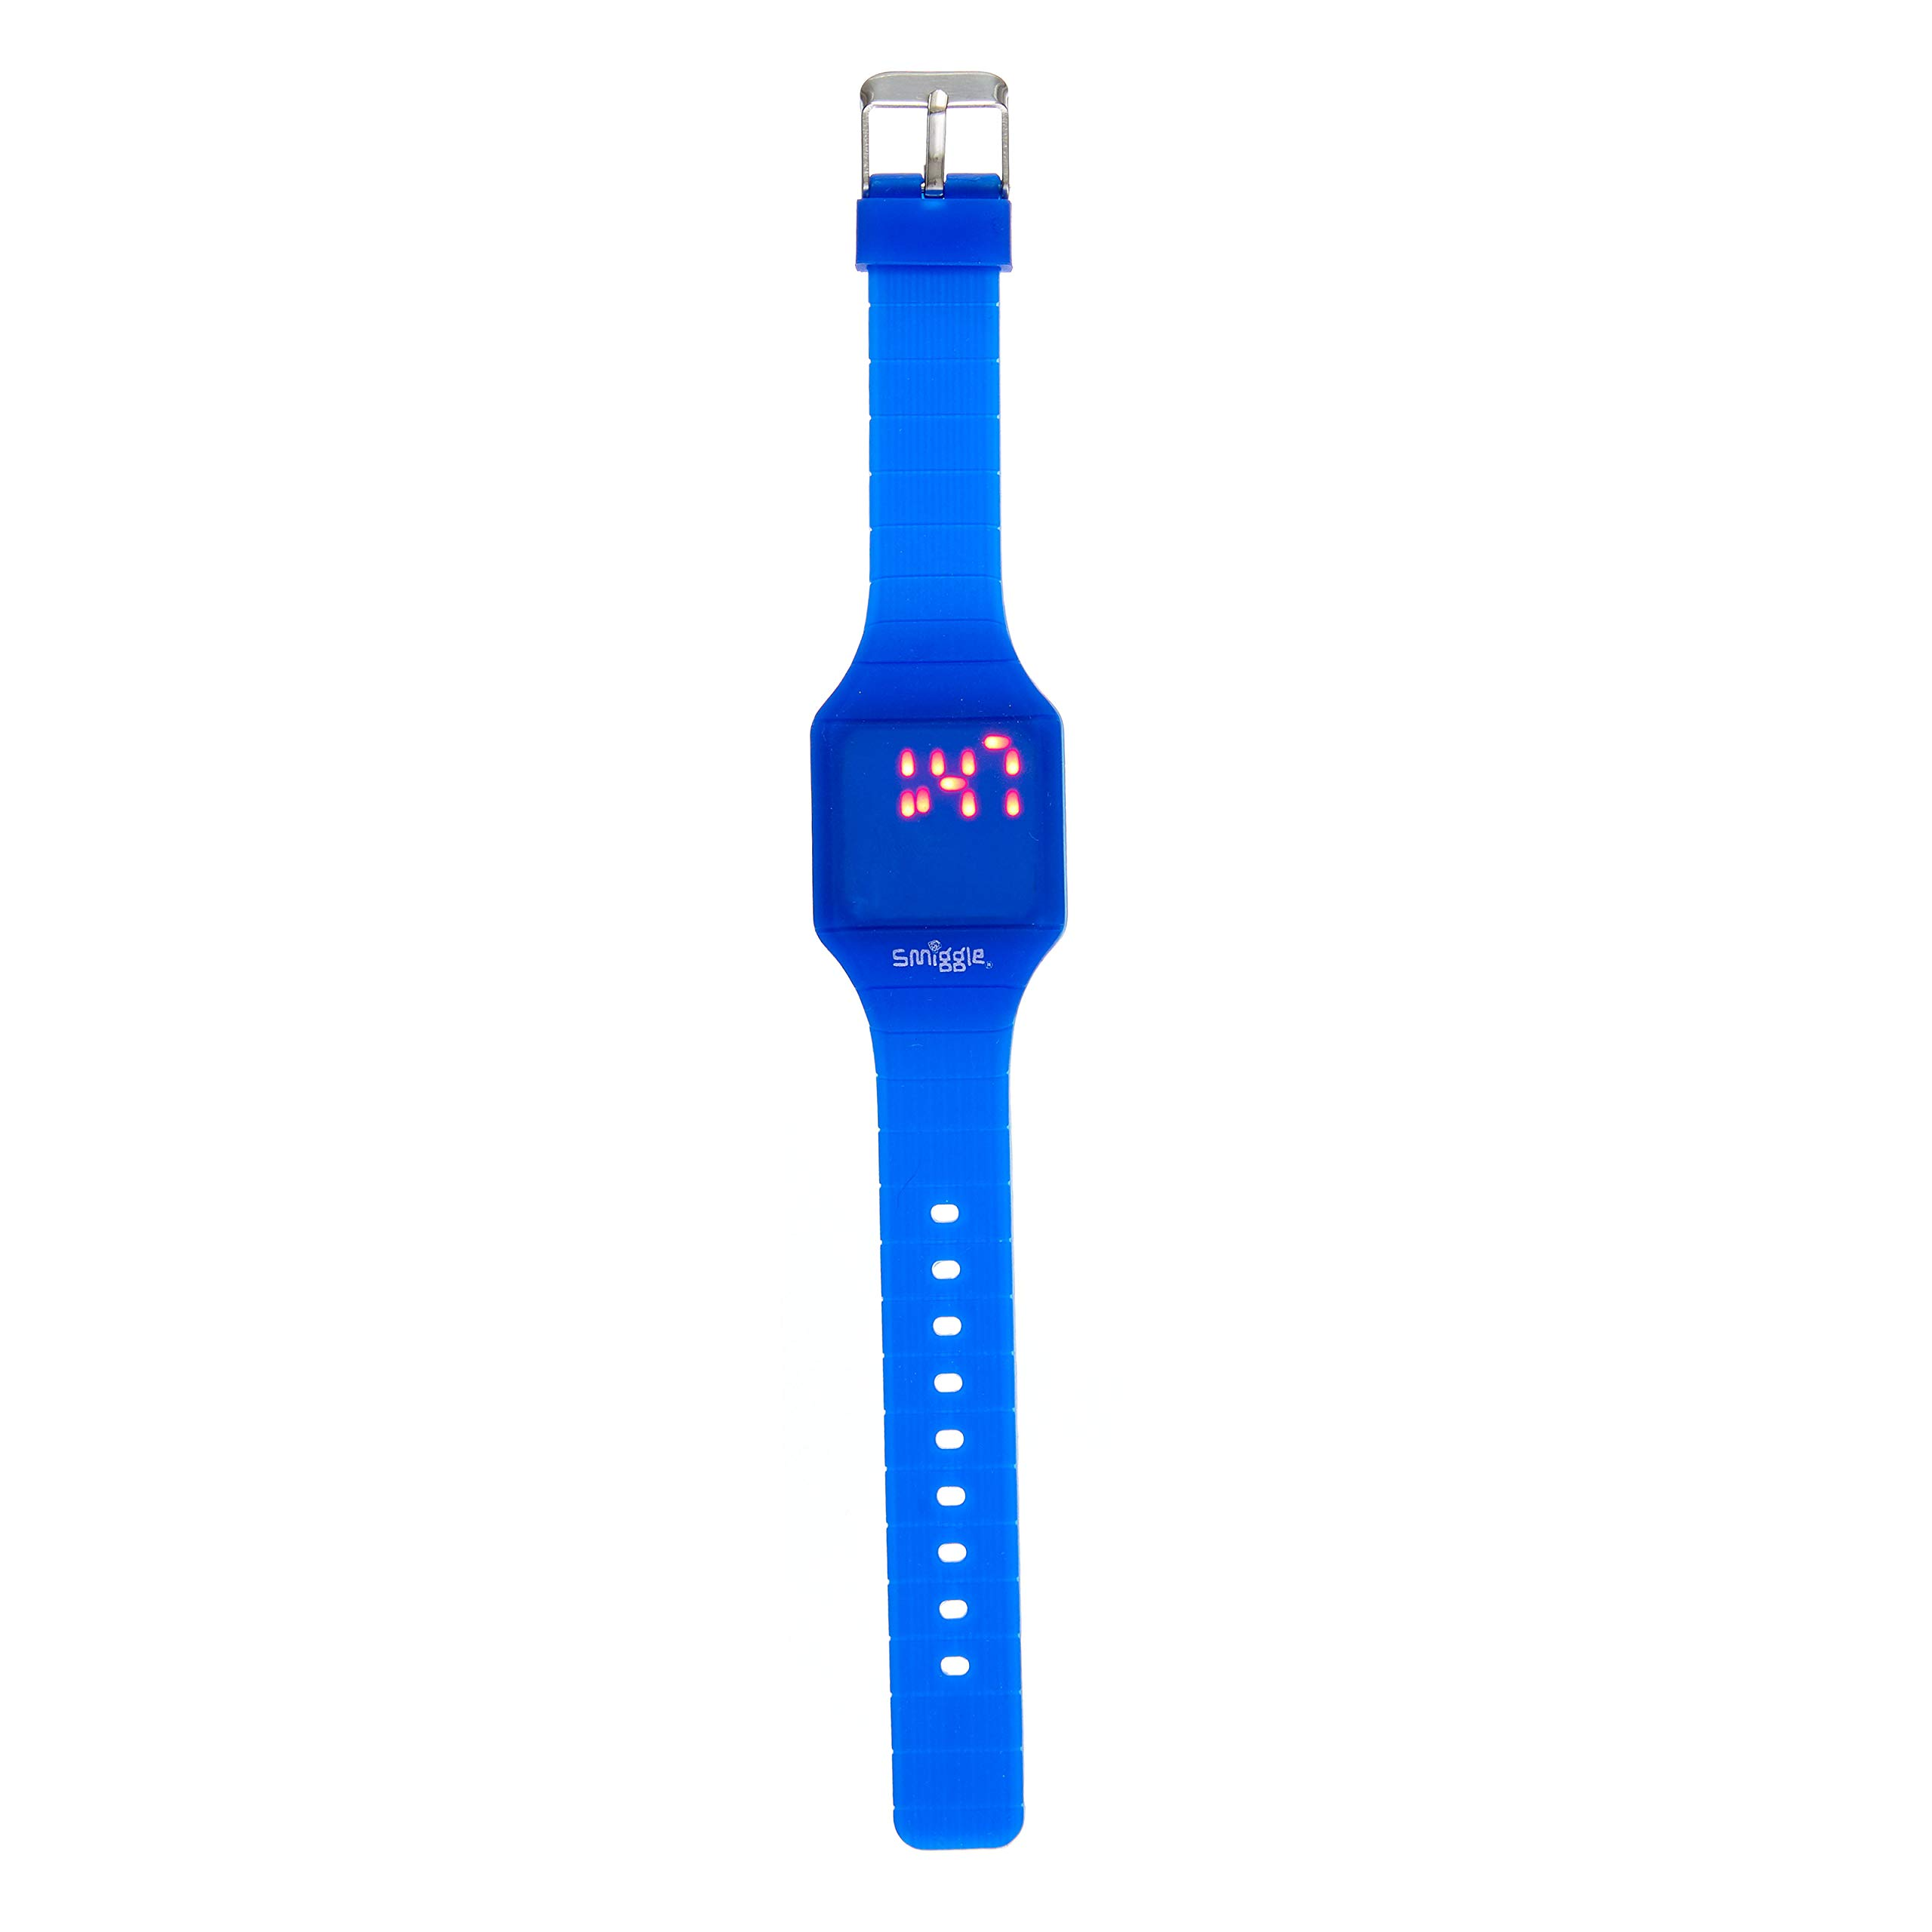 Smiggle Watch This Space - Navy by Smiggle